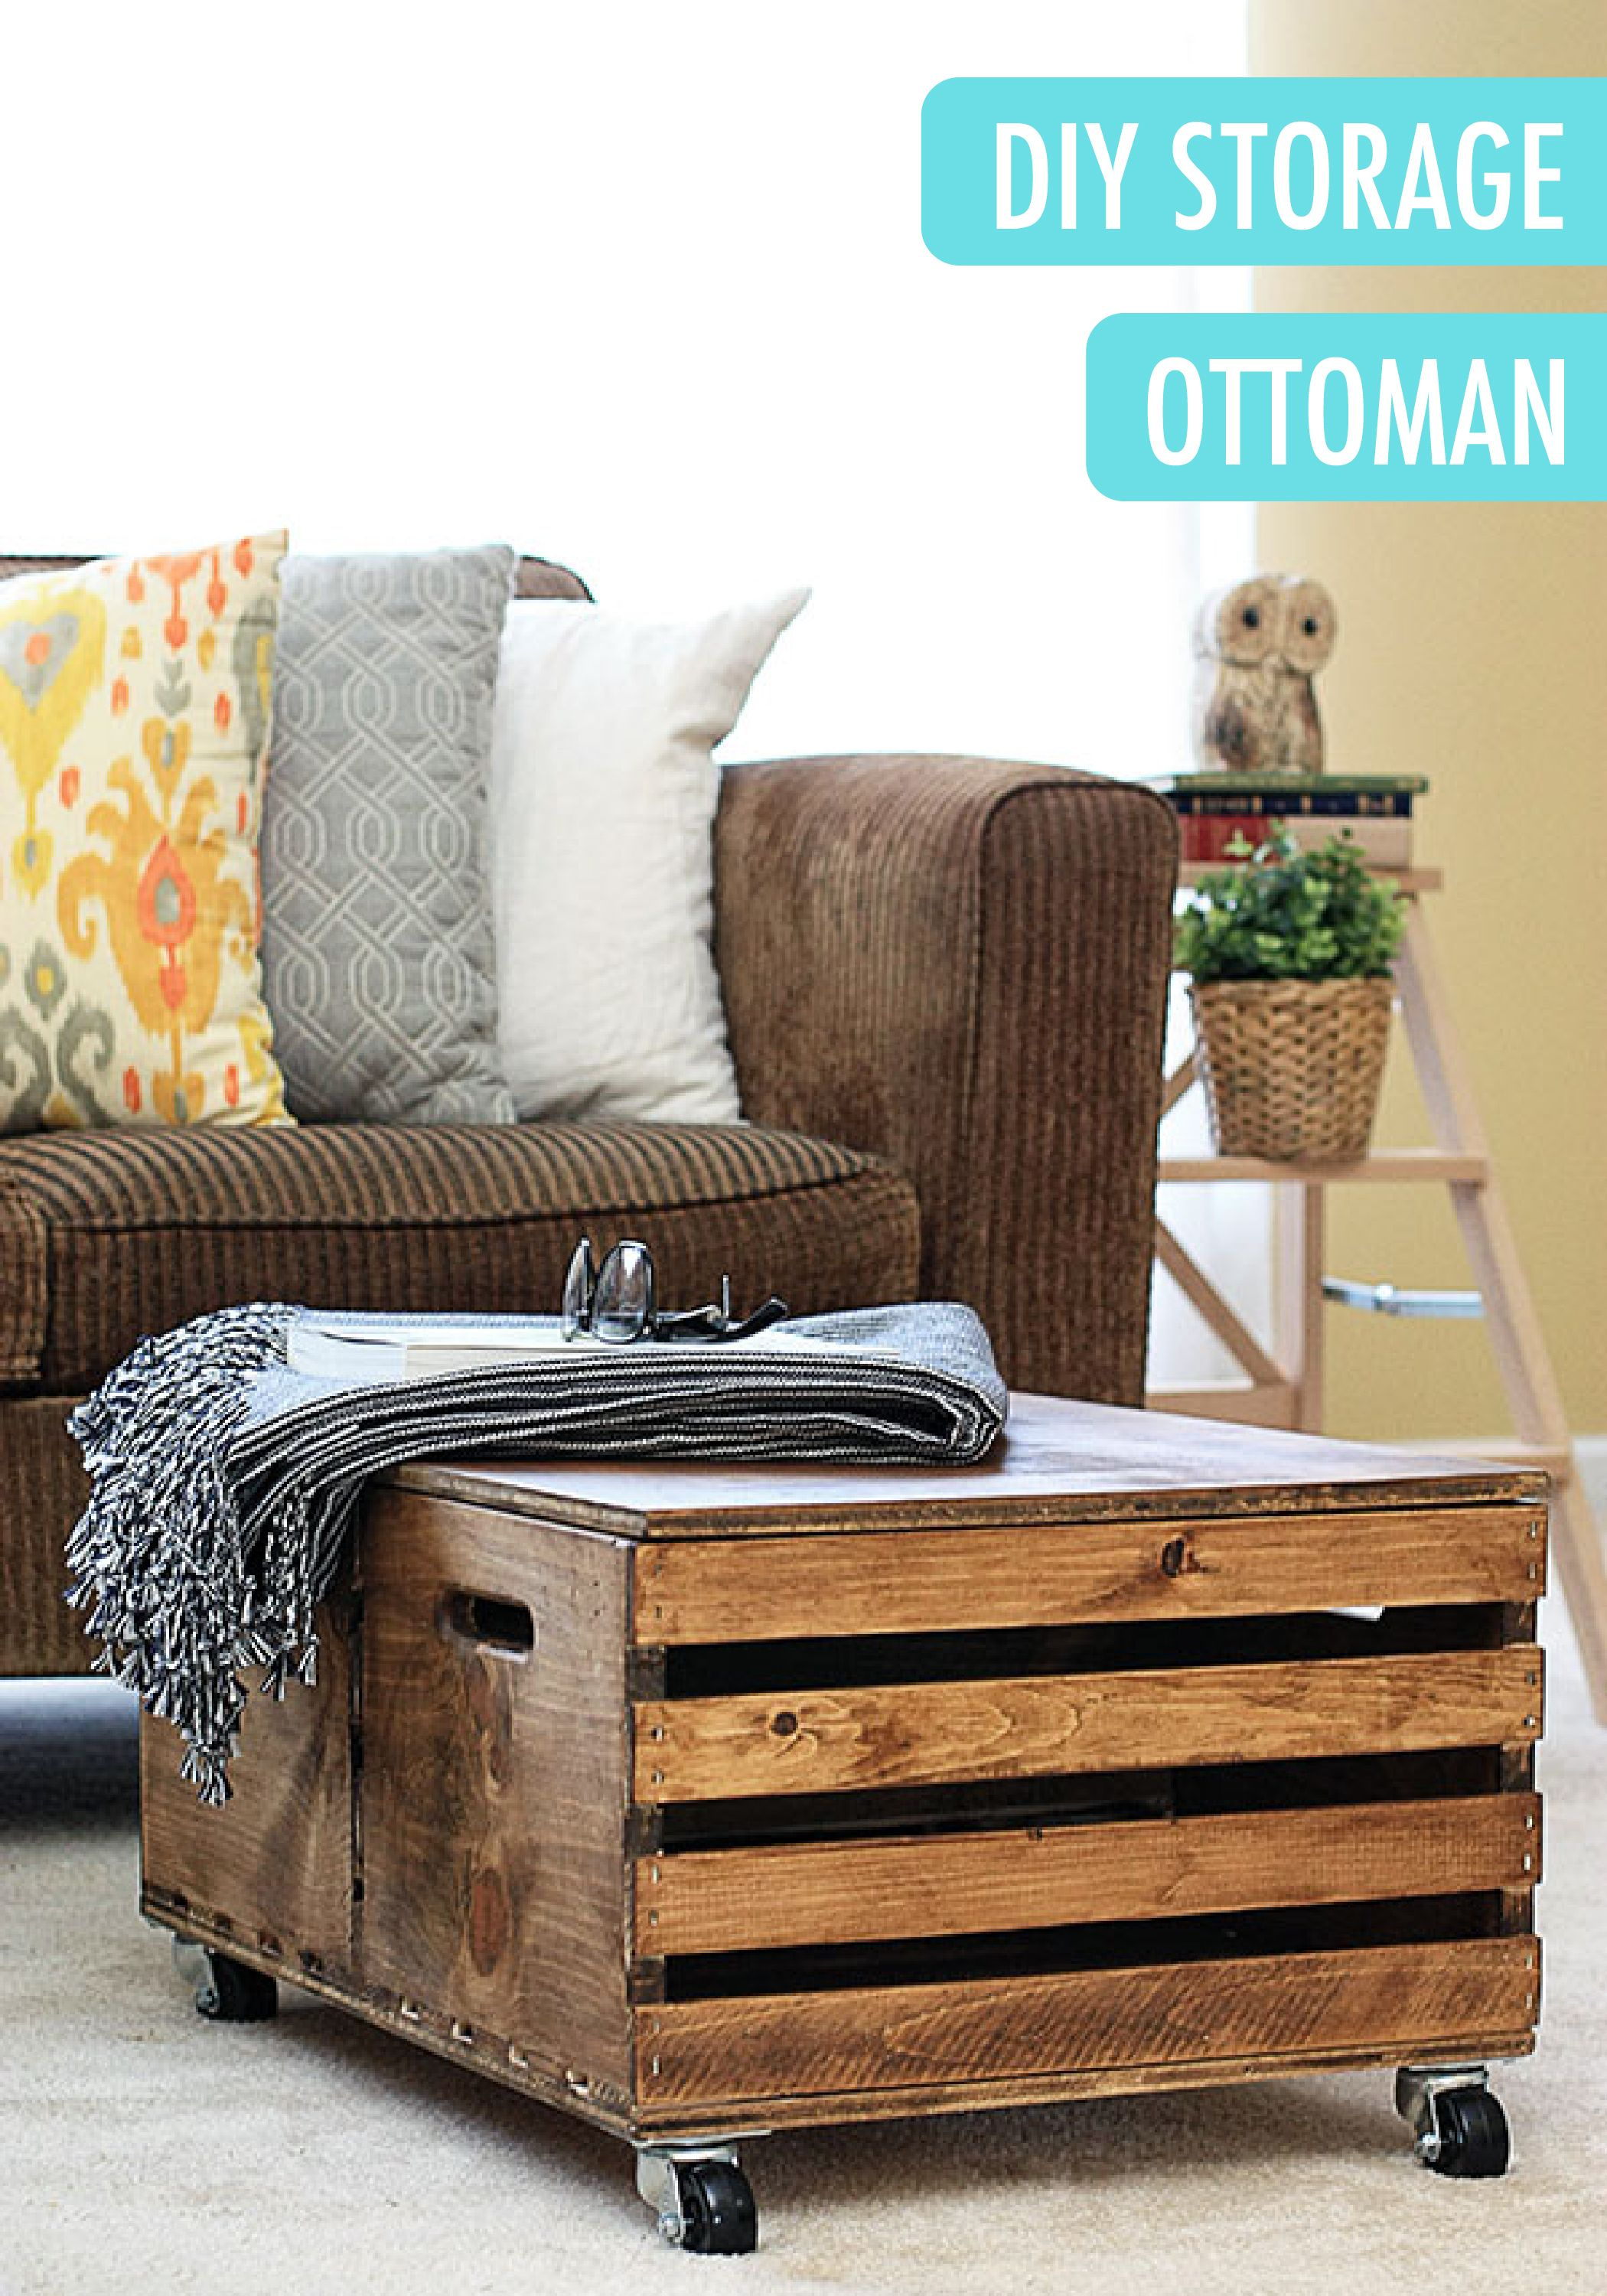 Delicieux Bring A Dash Of Rustic Charm Into Your Home With This Home Improvement  Project Idea For A DIY Storage Ottomanu2014made From Wooden Crates!